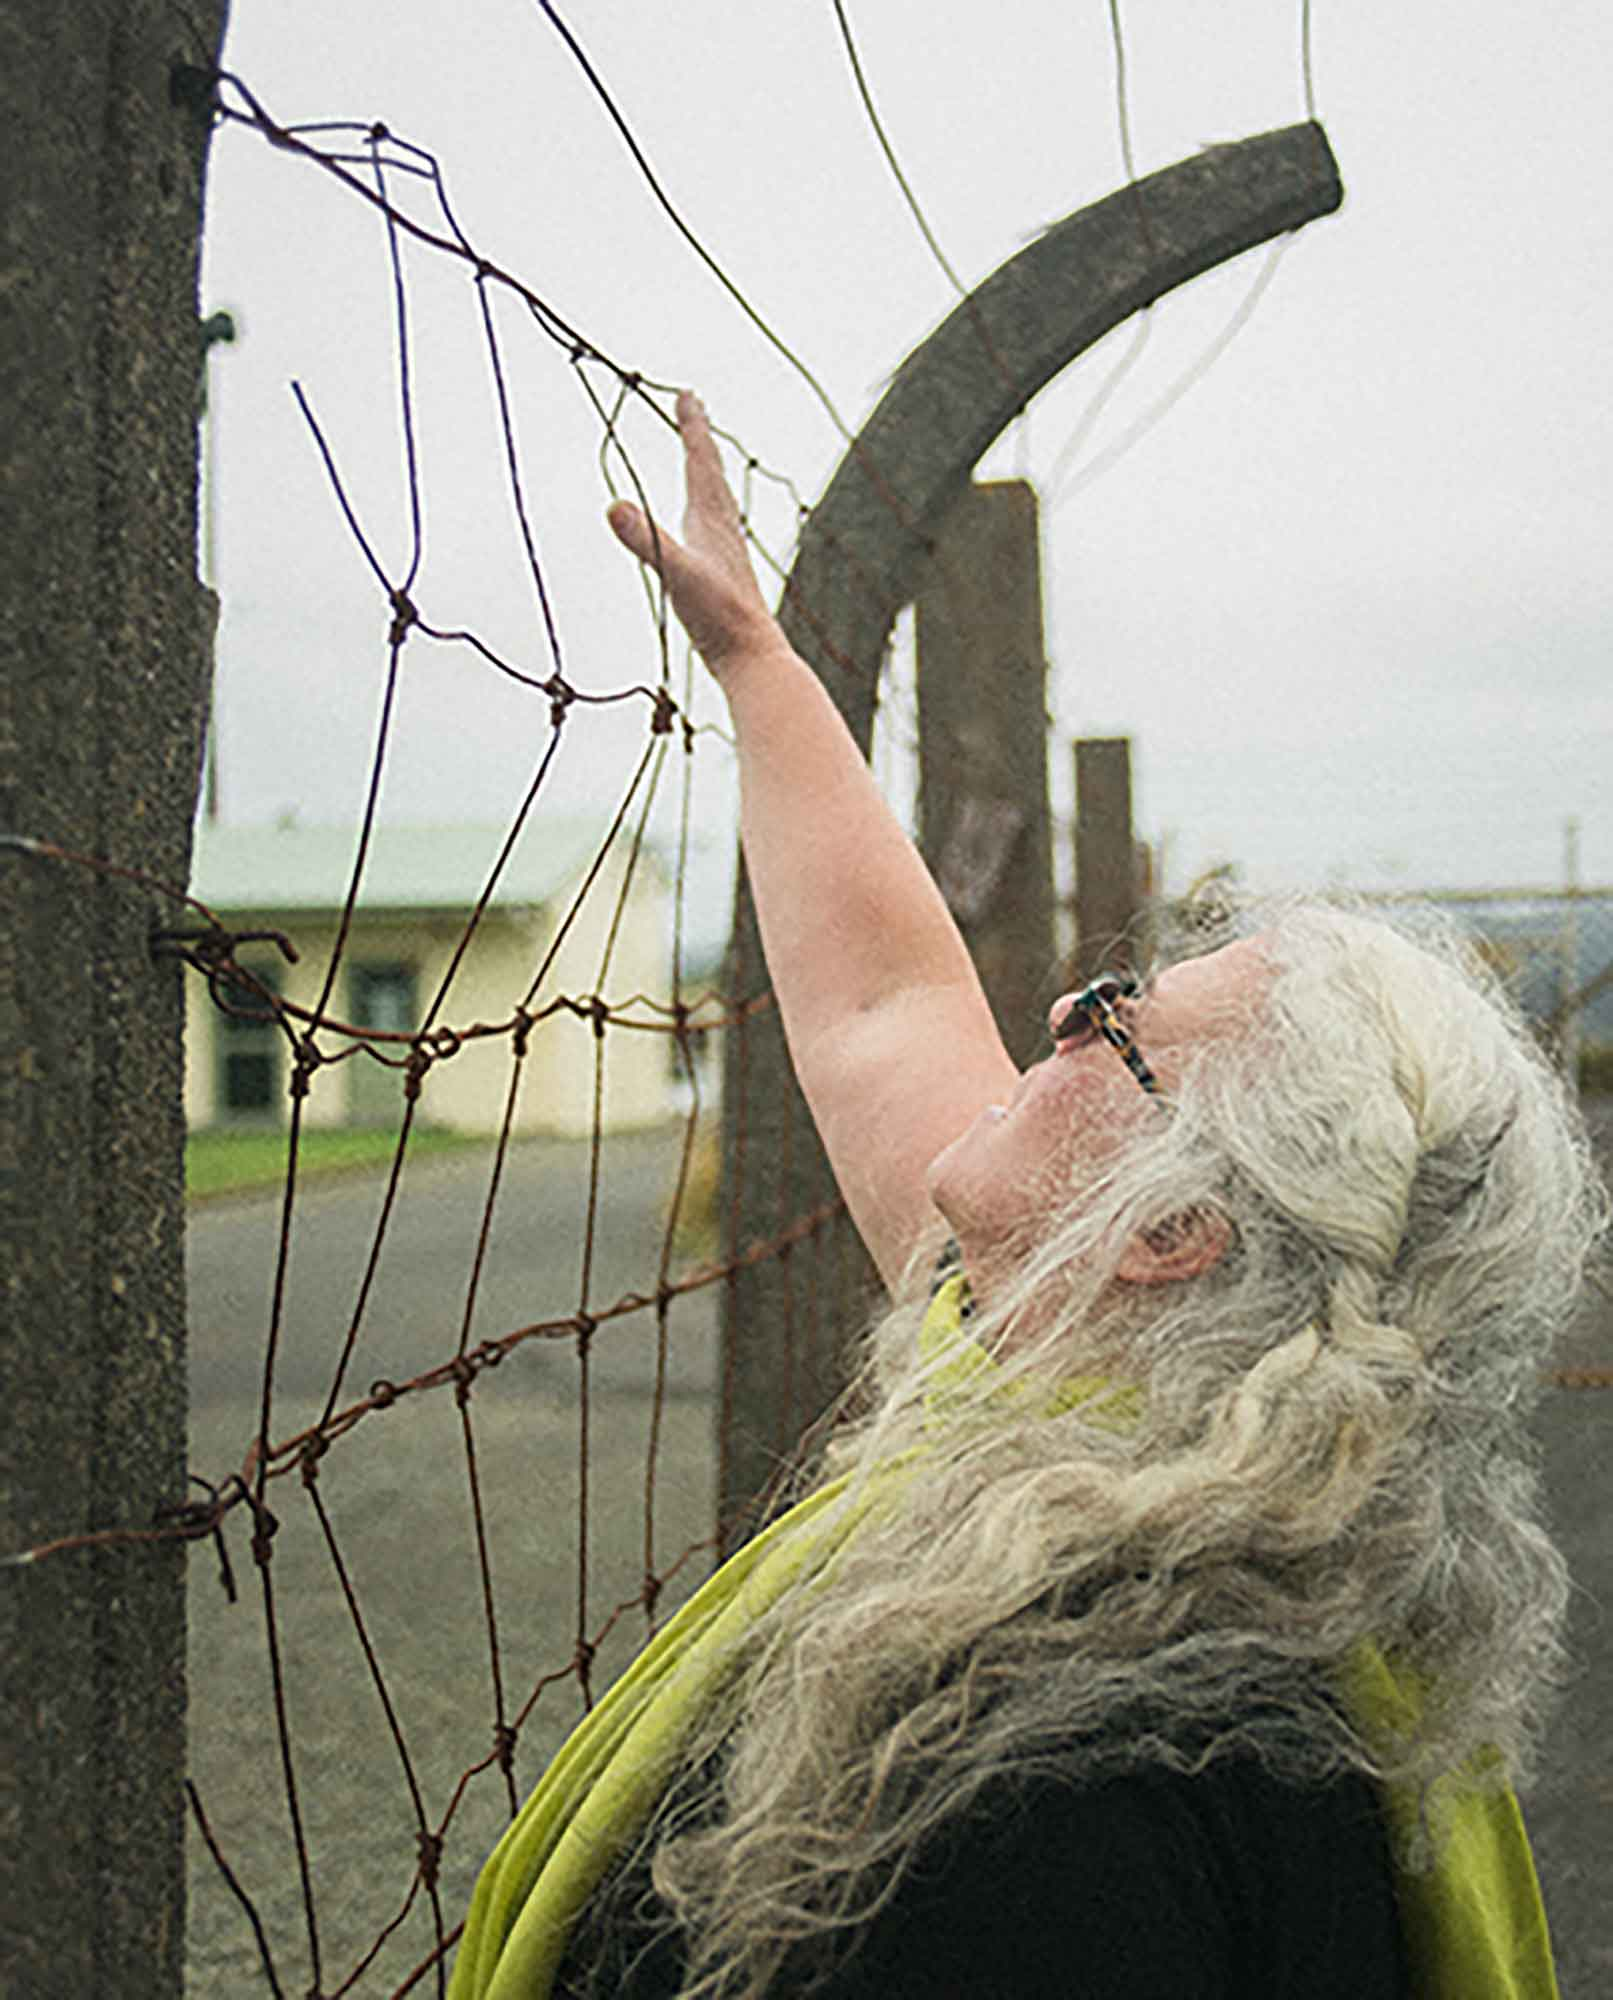 Reading the metal fence surrounding the quarantine station as a sound-text. A still image from performance documentation of windwoundweatherwirewovenwoman (2017). Joshua Lewis photographer.